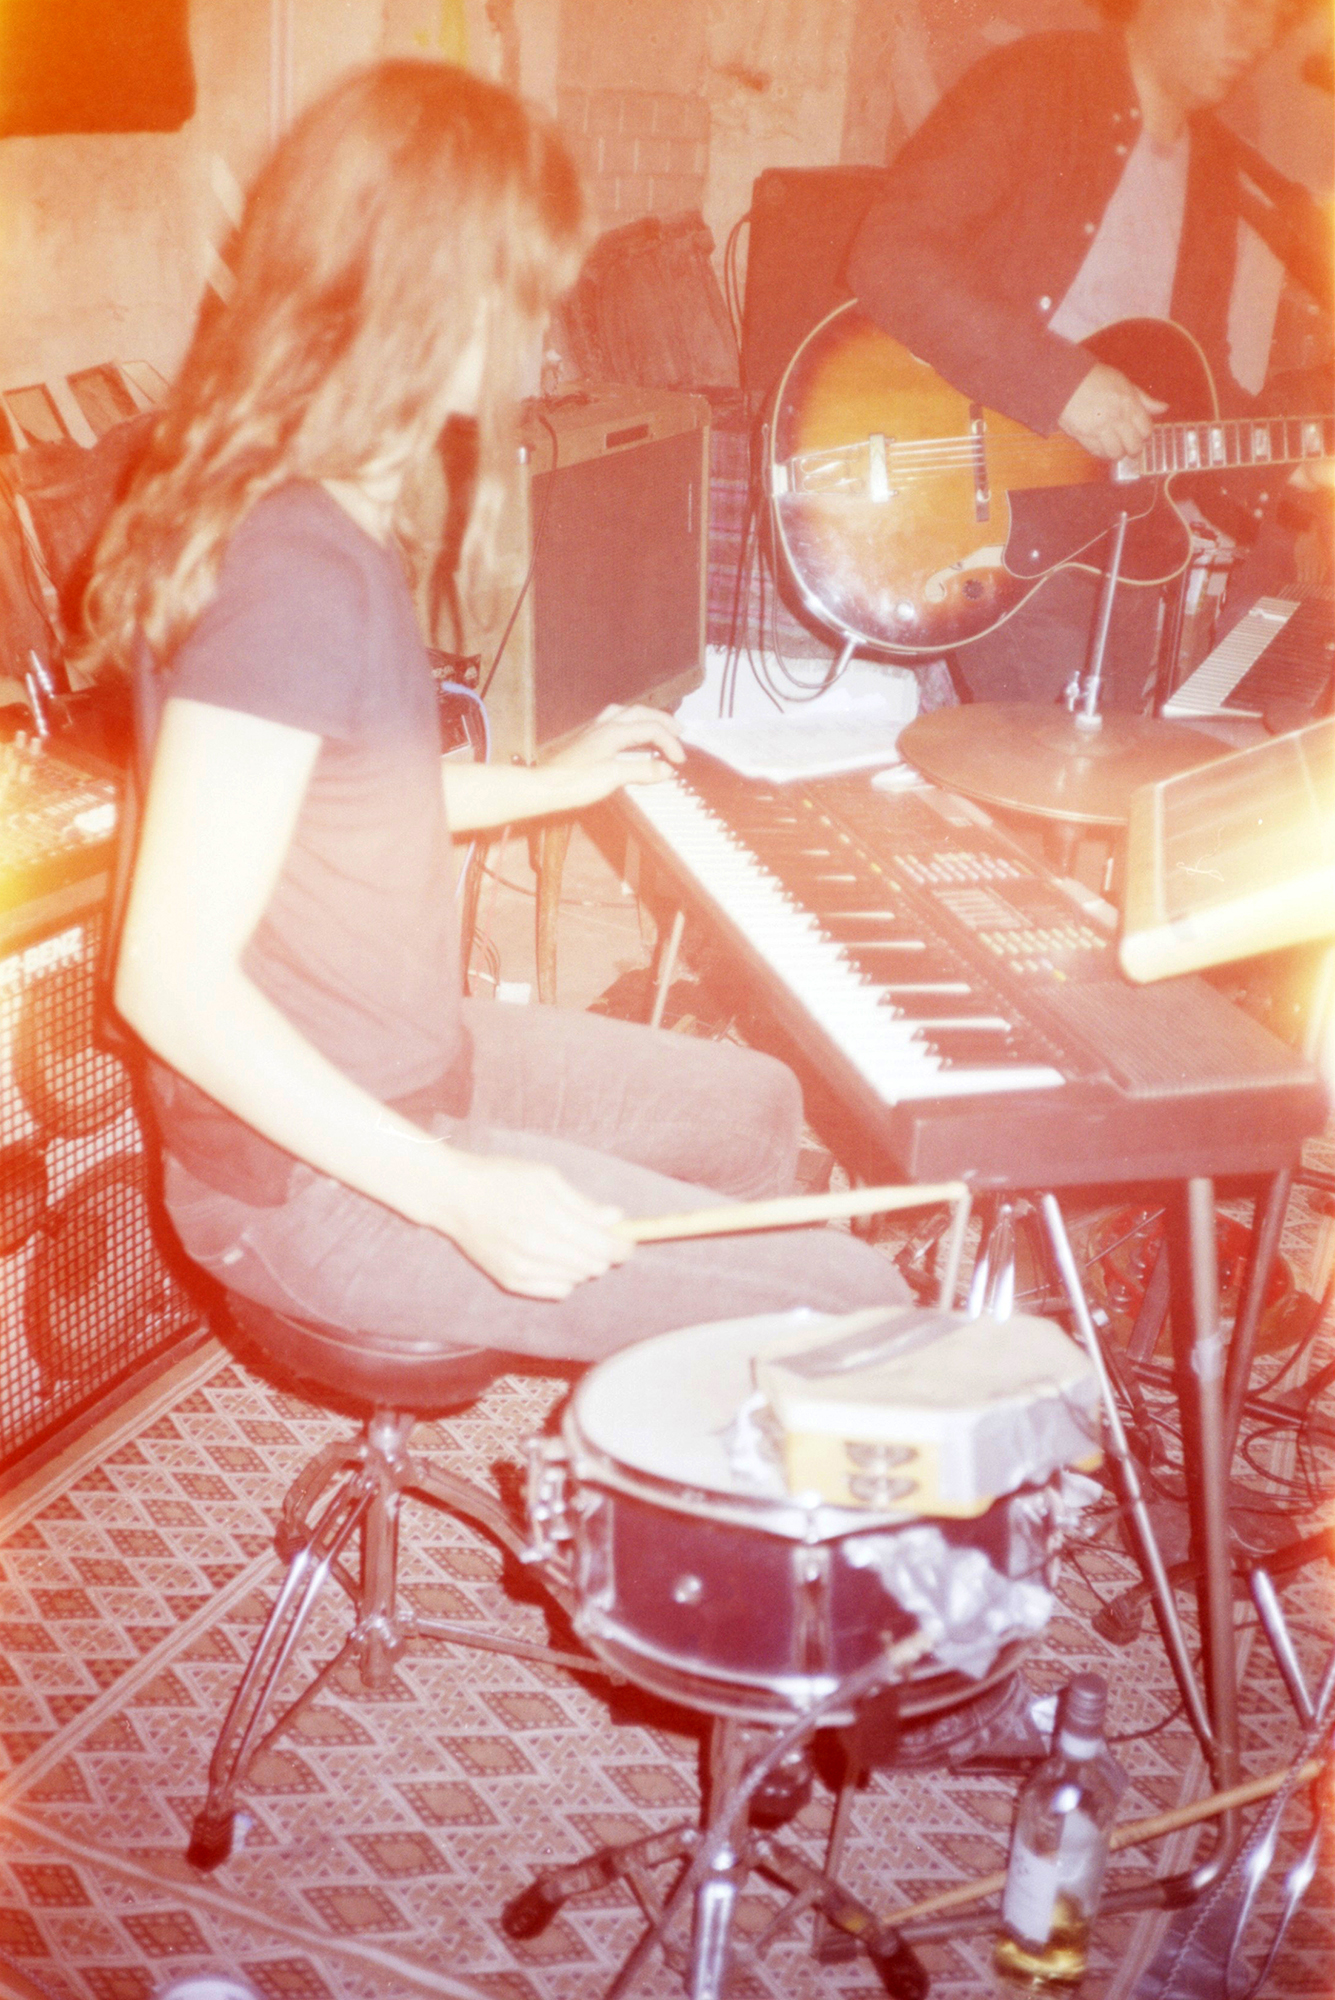 Melody, concert Medianoche artificial